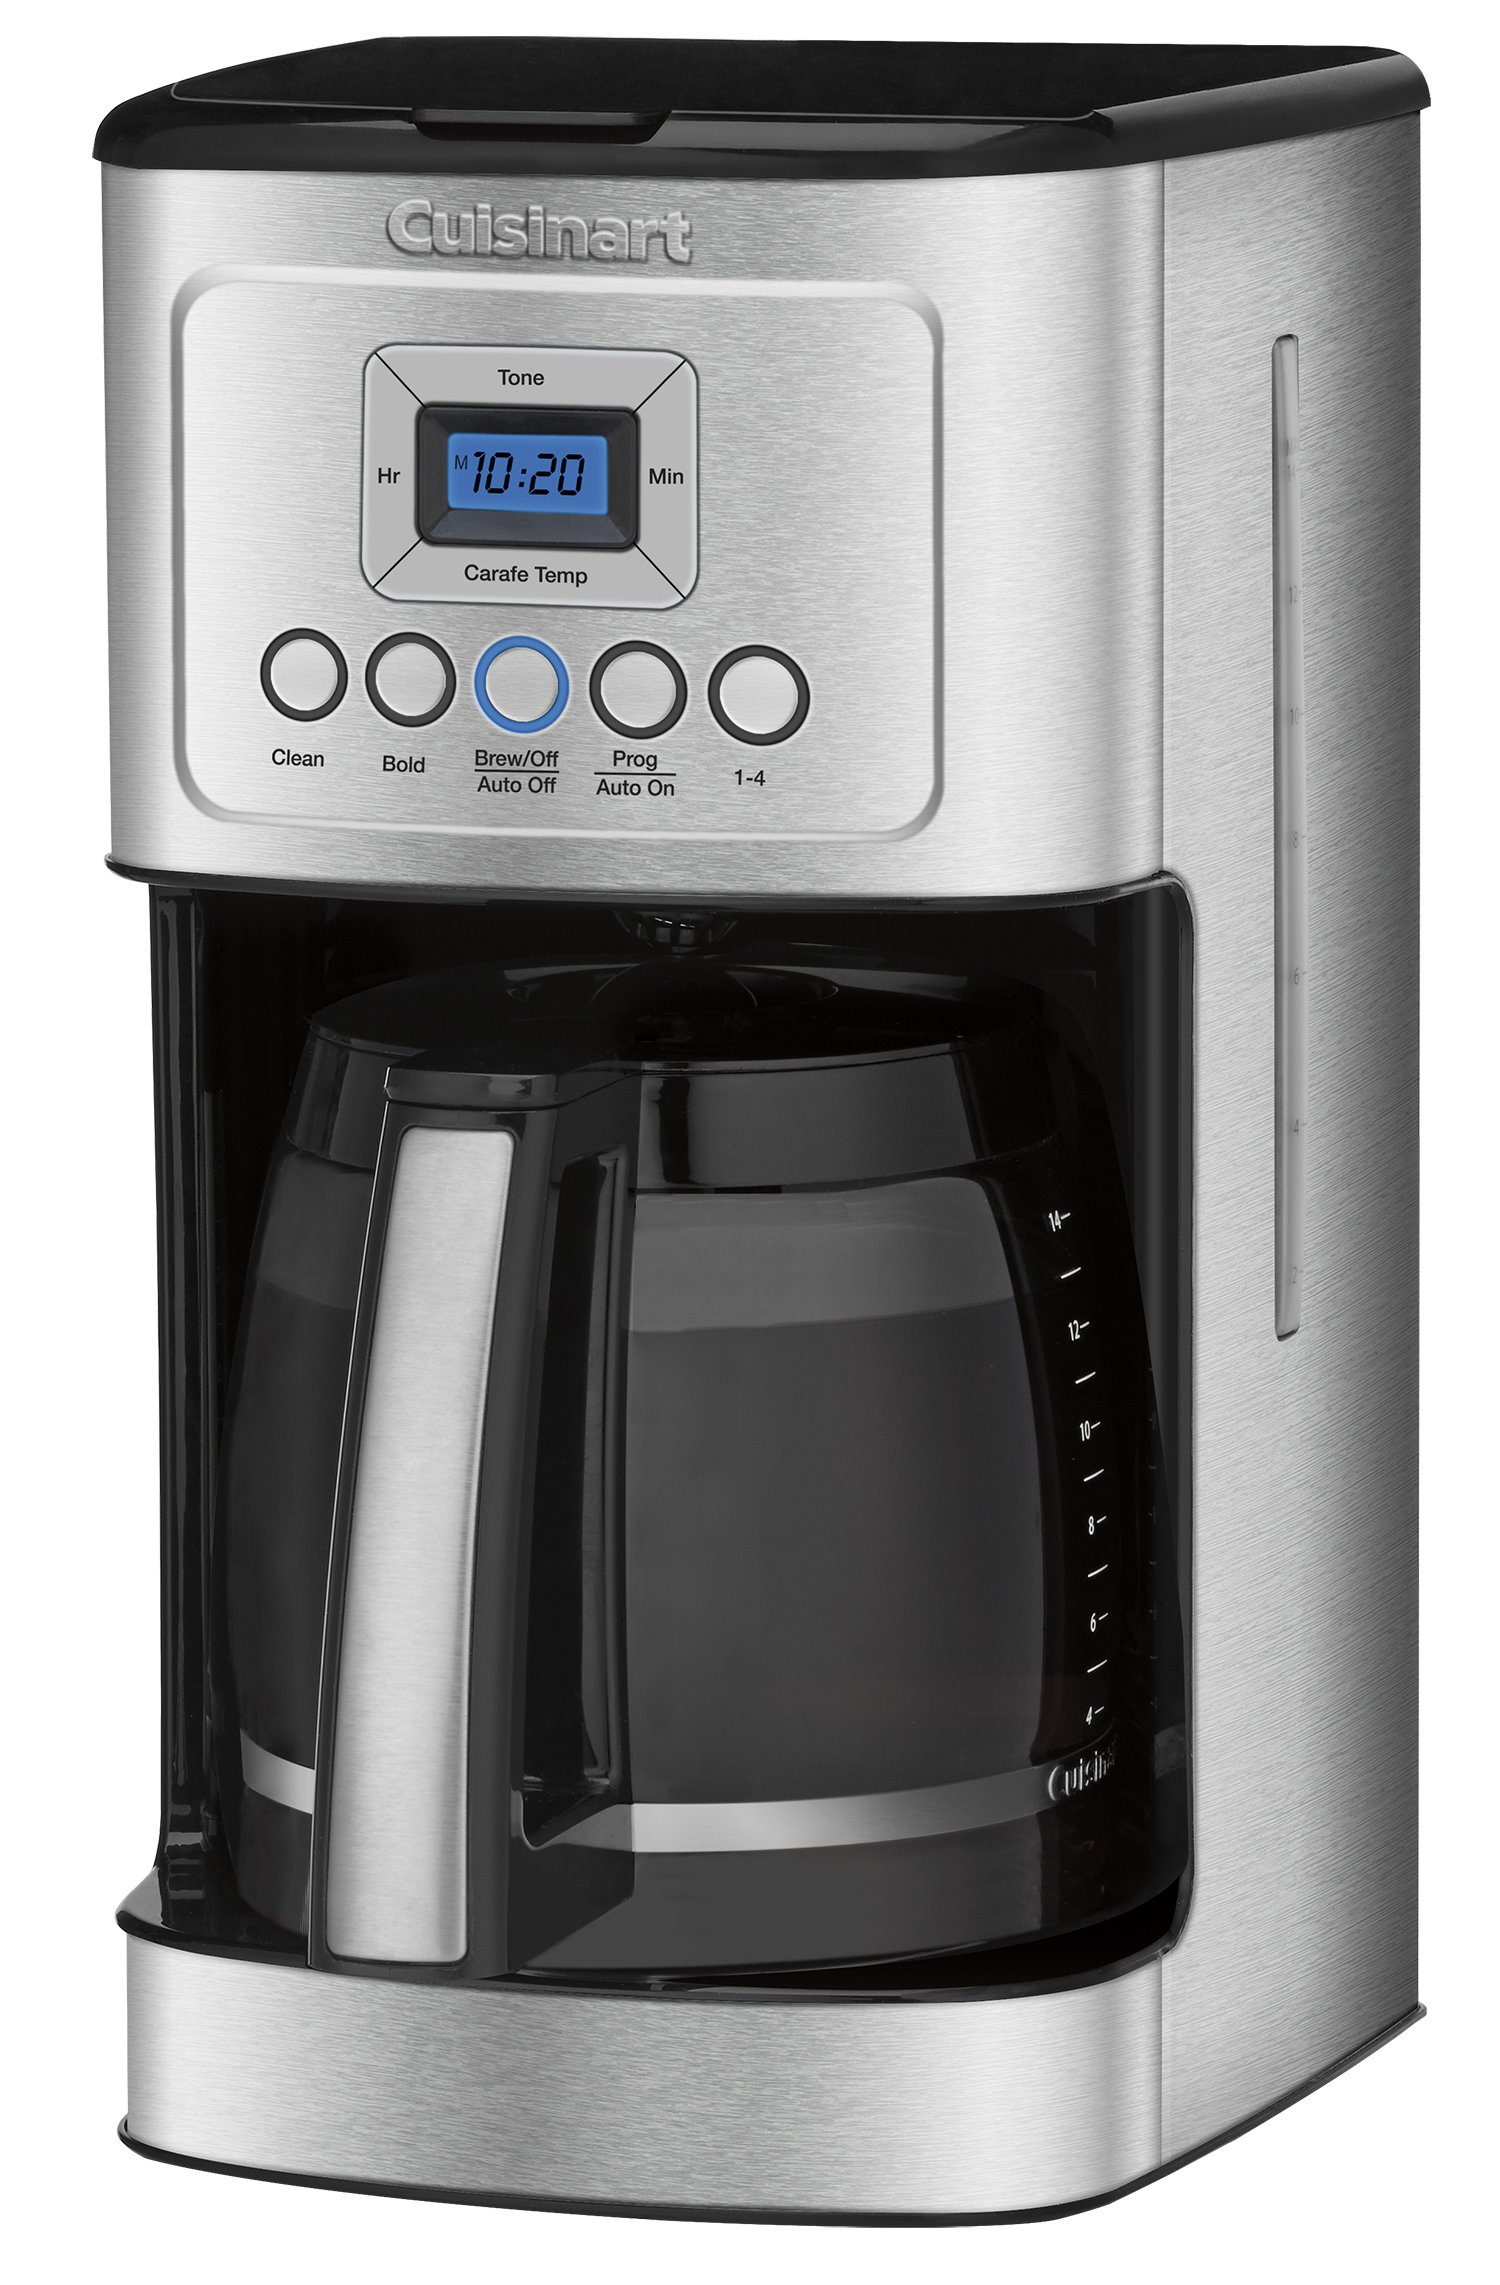 Cuisinart DCC-3200 14-Cup Glass Carafe with Stainless Steel Handle Programmable Coffeemaker, Silver by Cuisinart (Image #2)